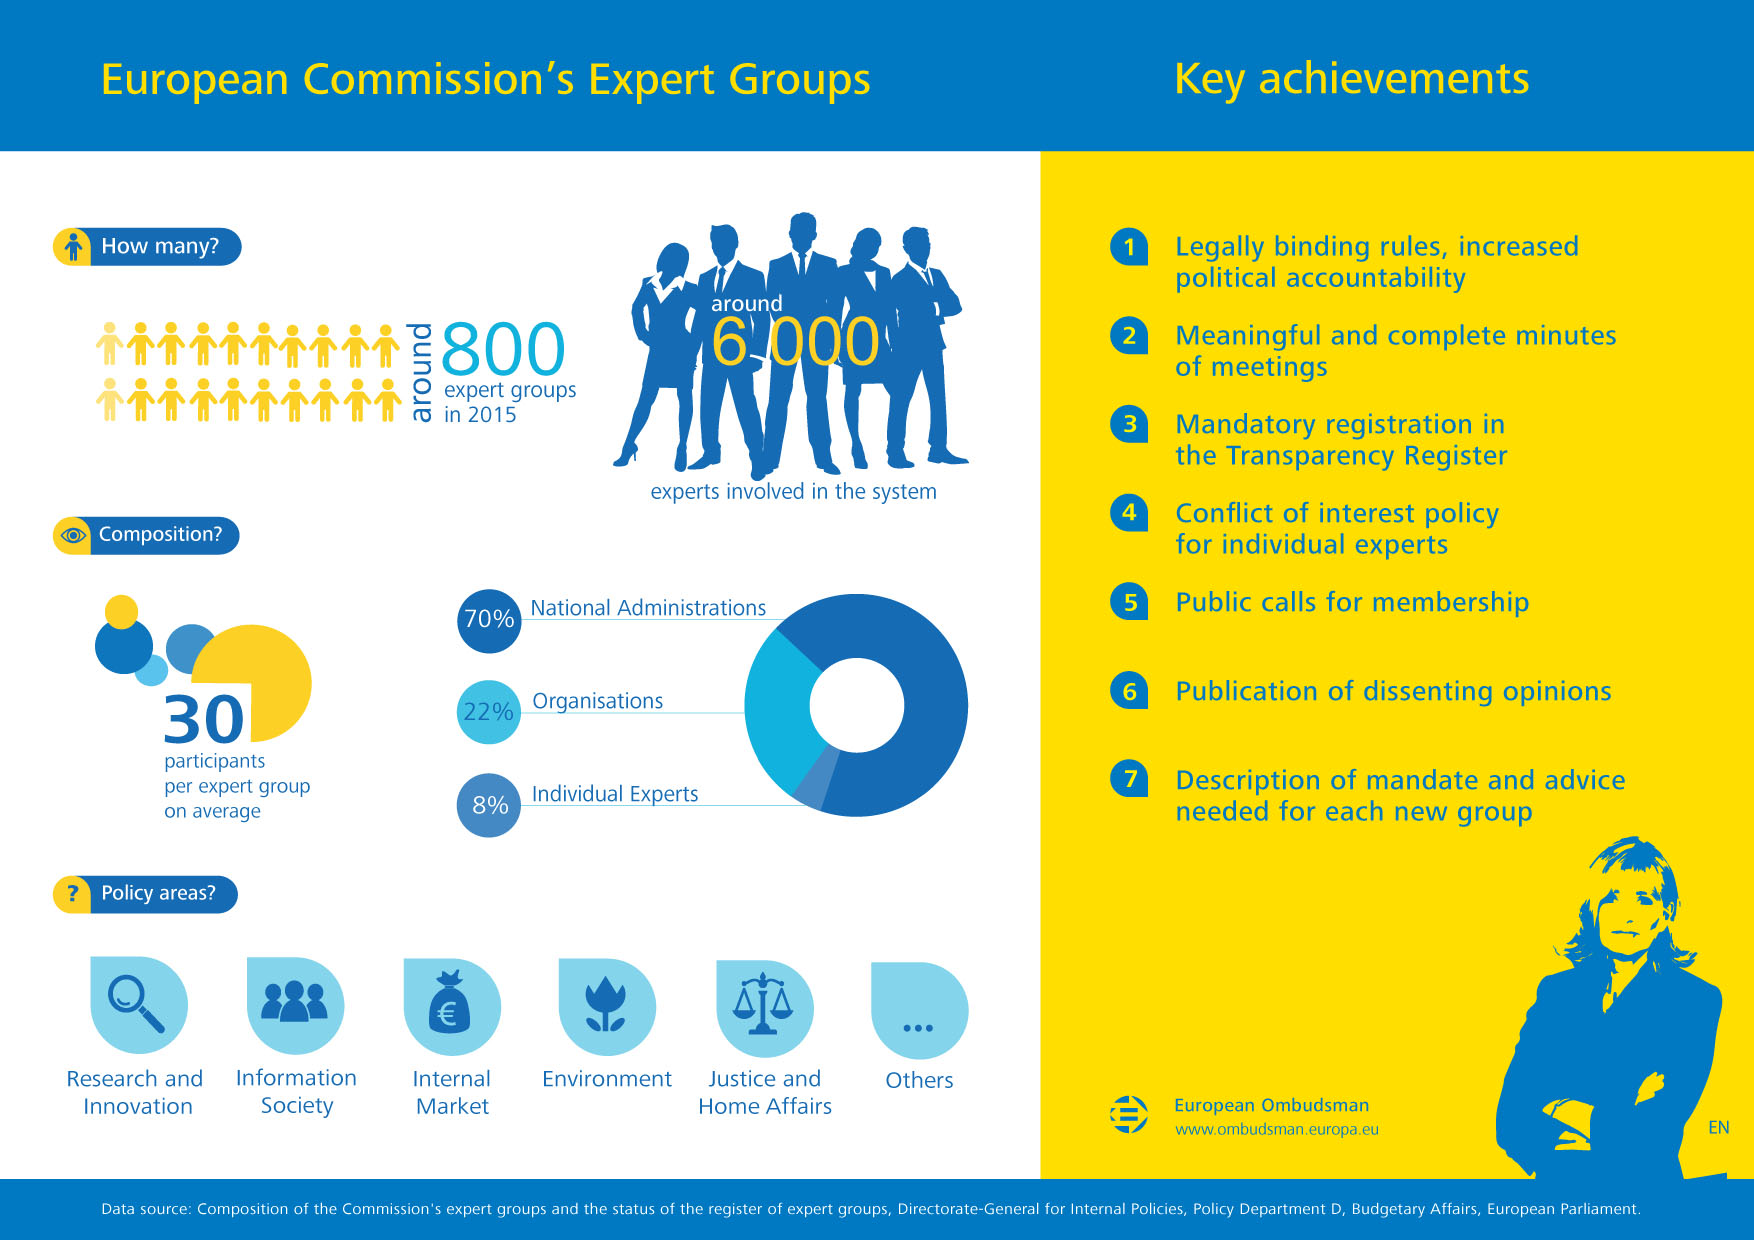 European Commission's Expert Groups